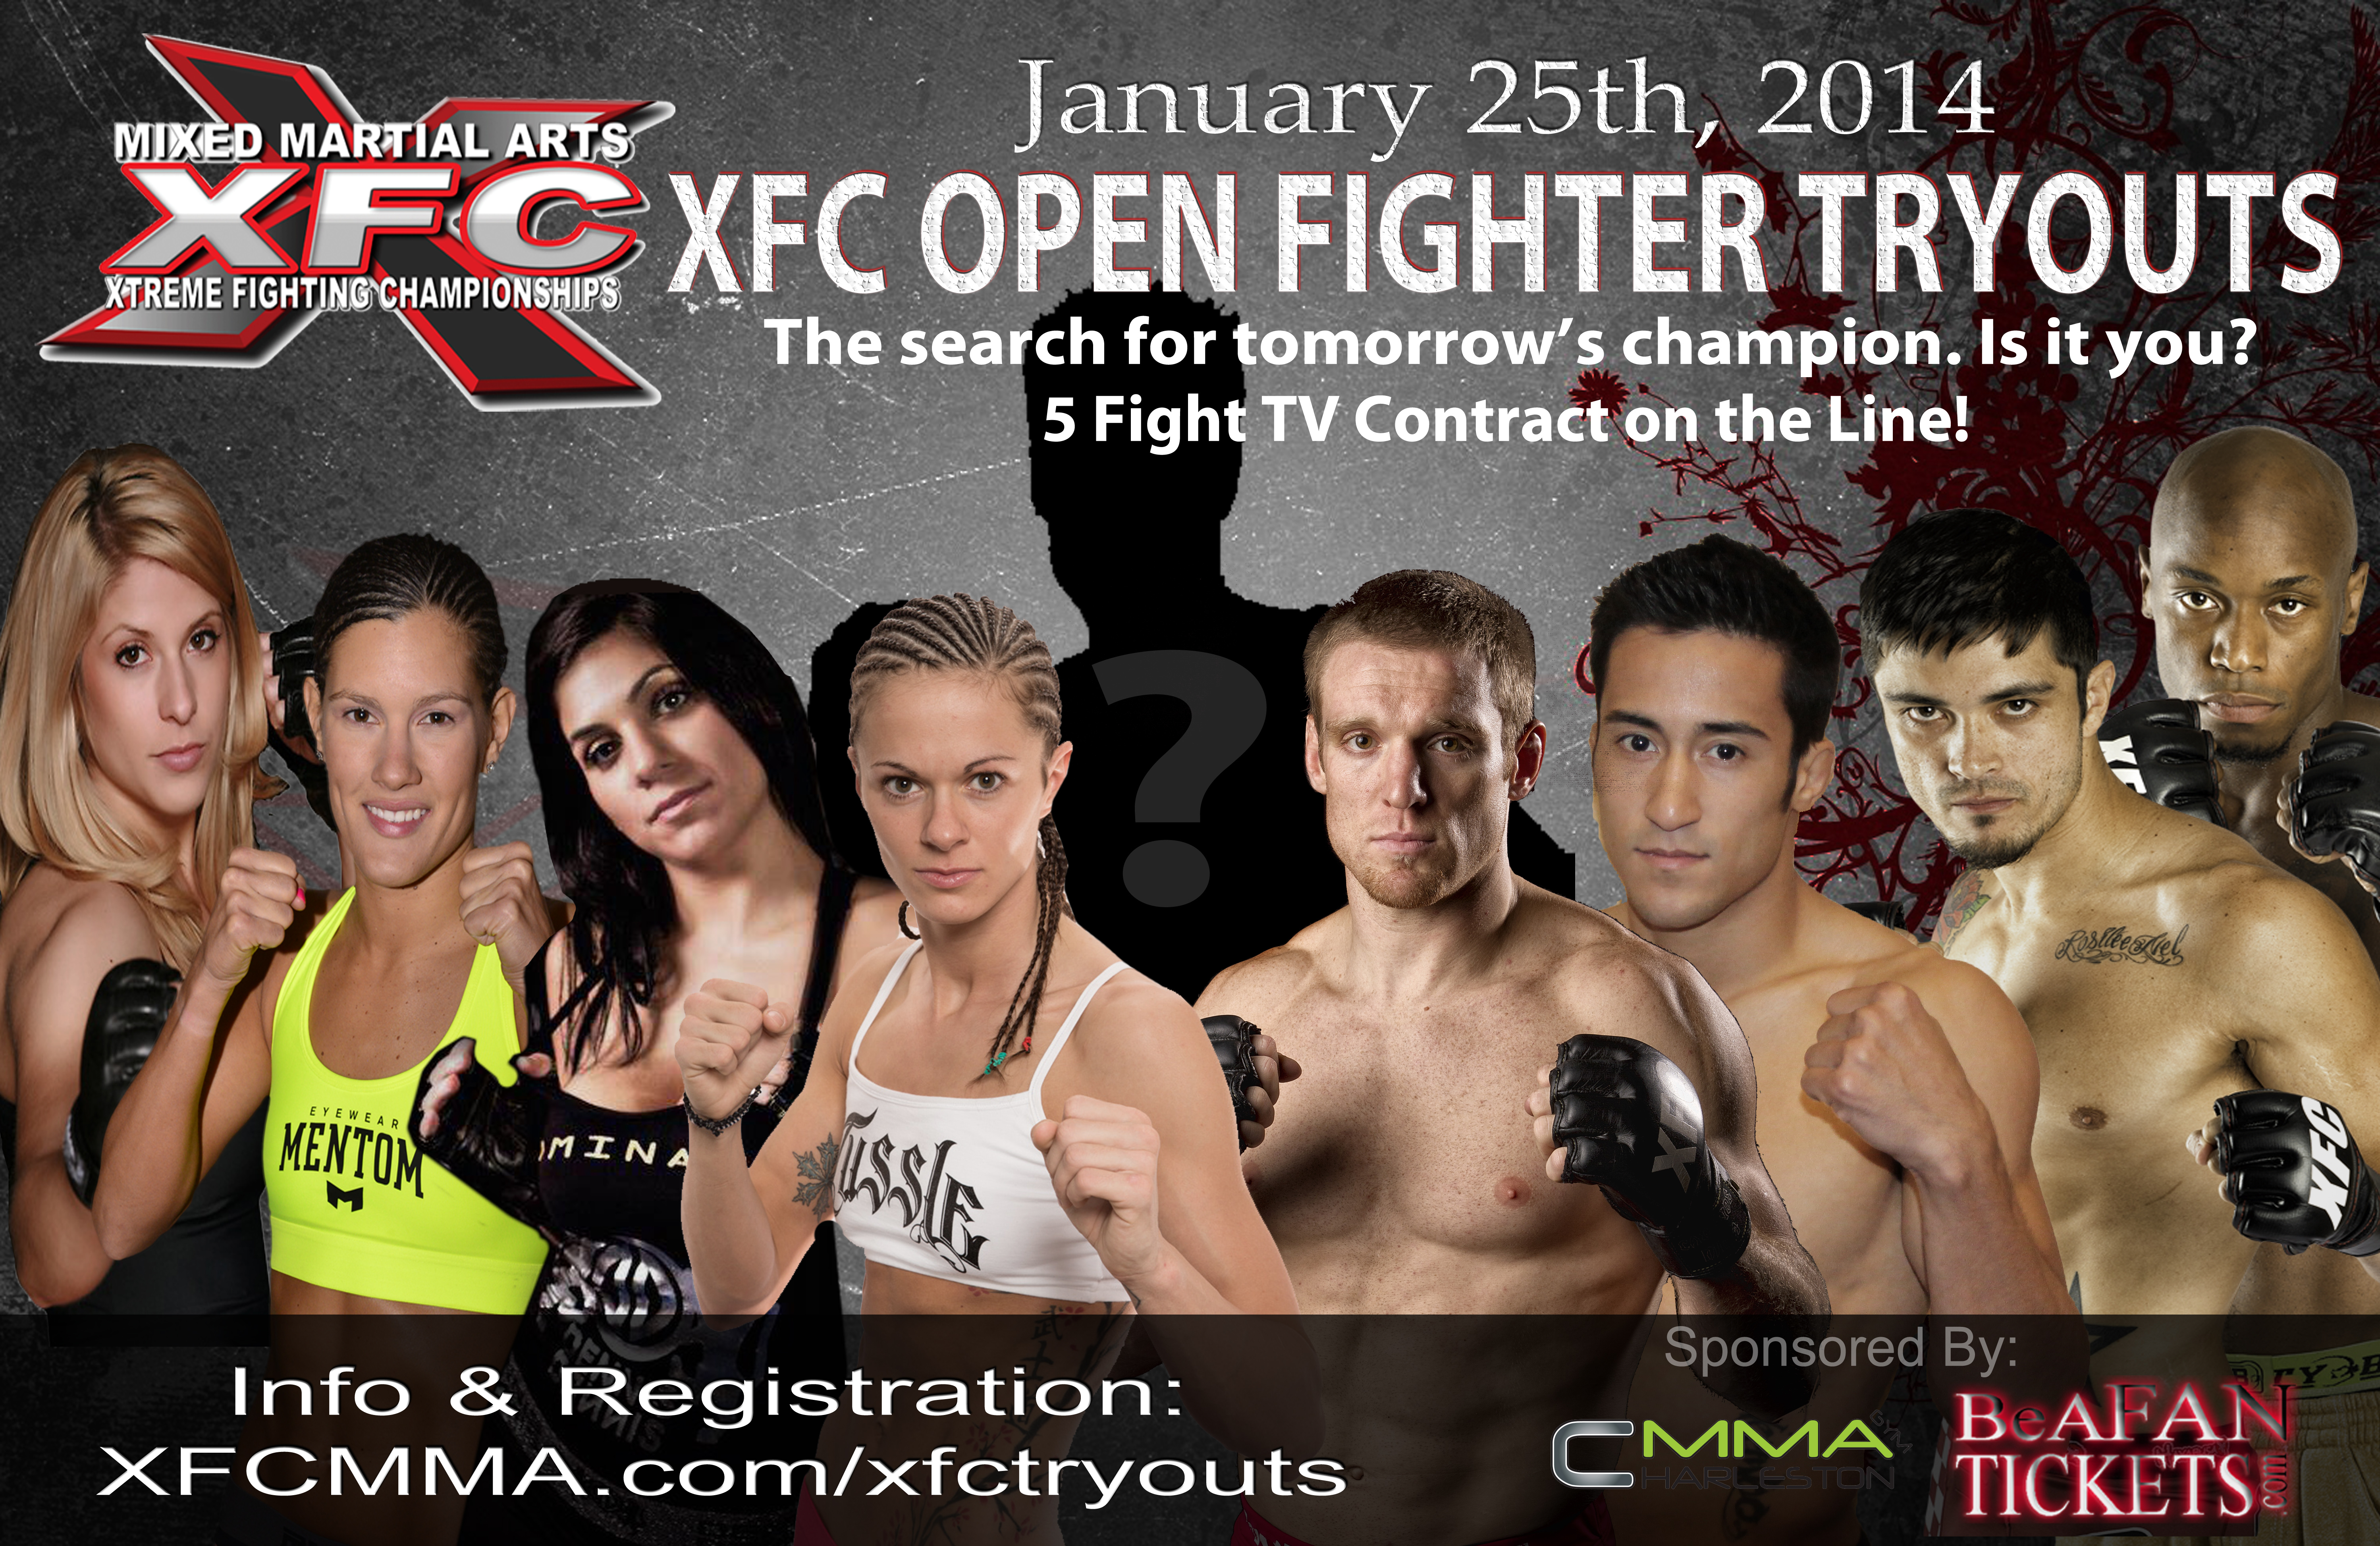 XFC Open Fighter Tryouts